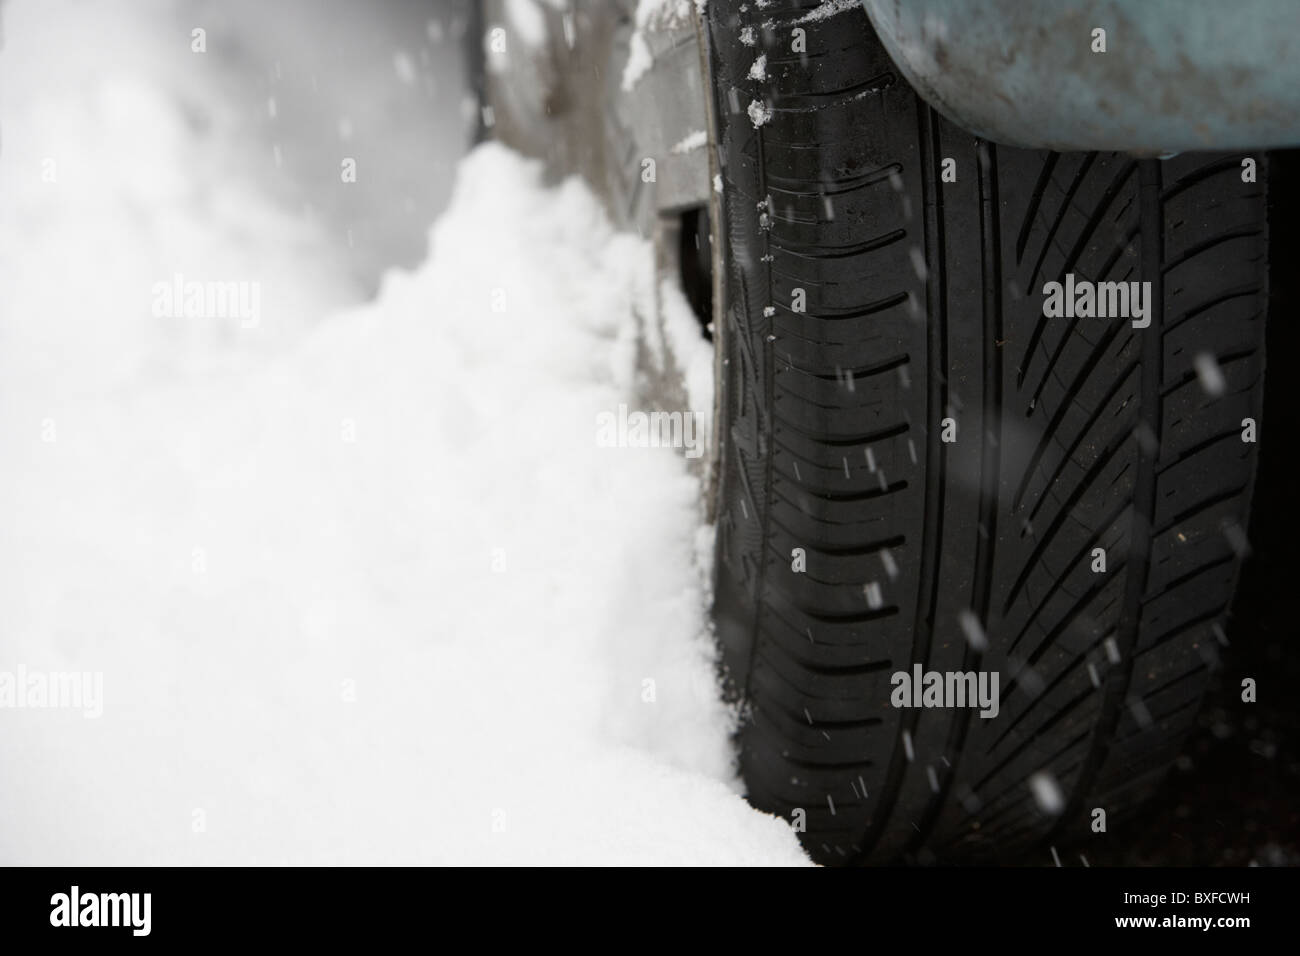 snow drifting up against a car tyre on a cold snowy winters day - Stock Image